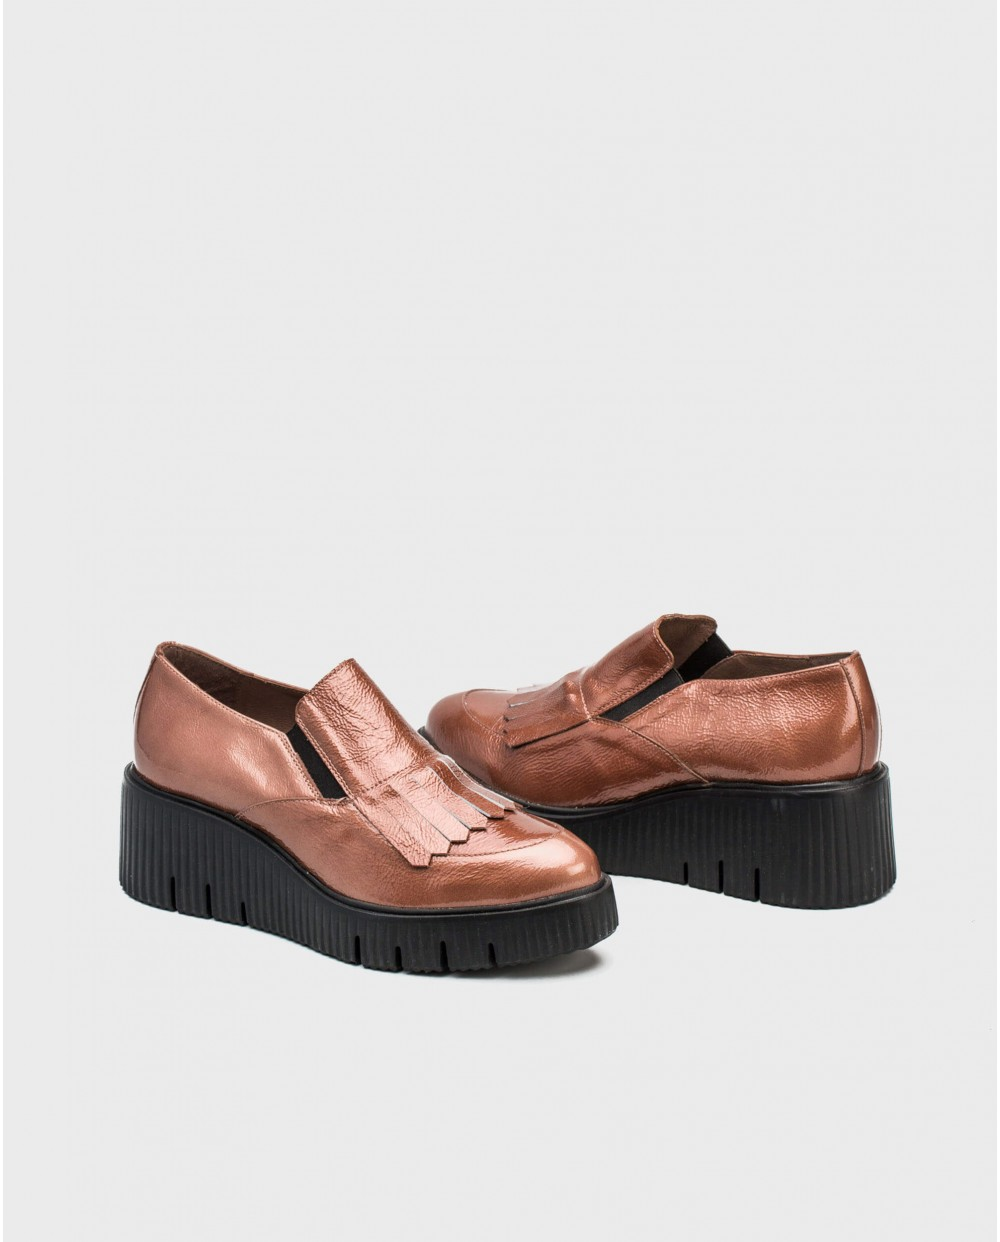 Wonders-Flat Shoes-Leather penny loafer with fringe